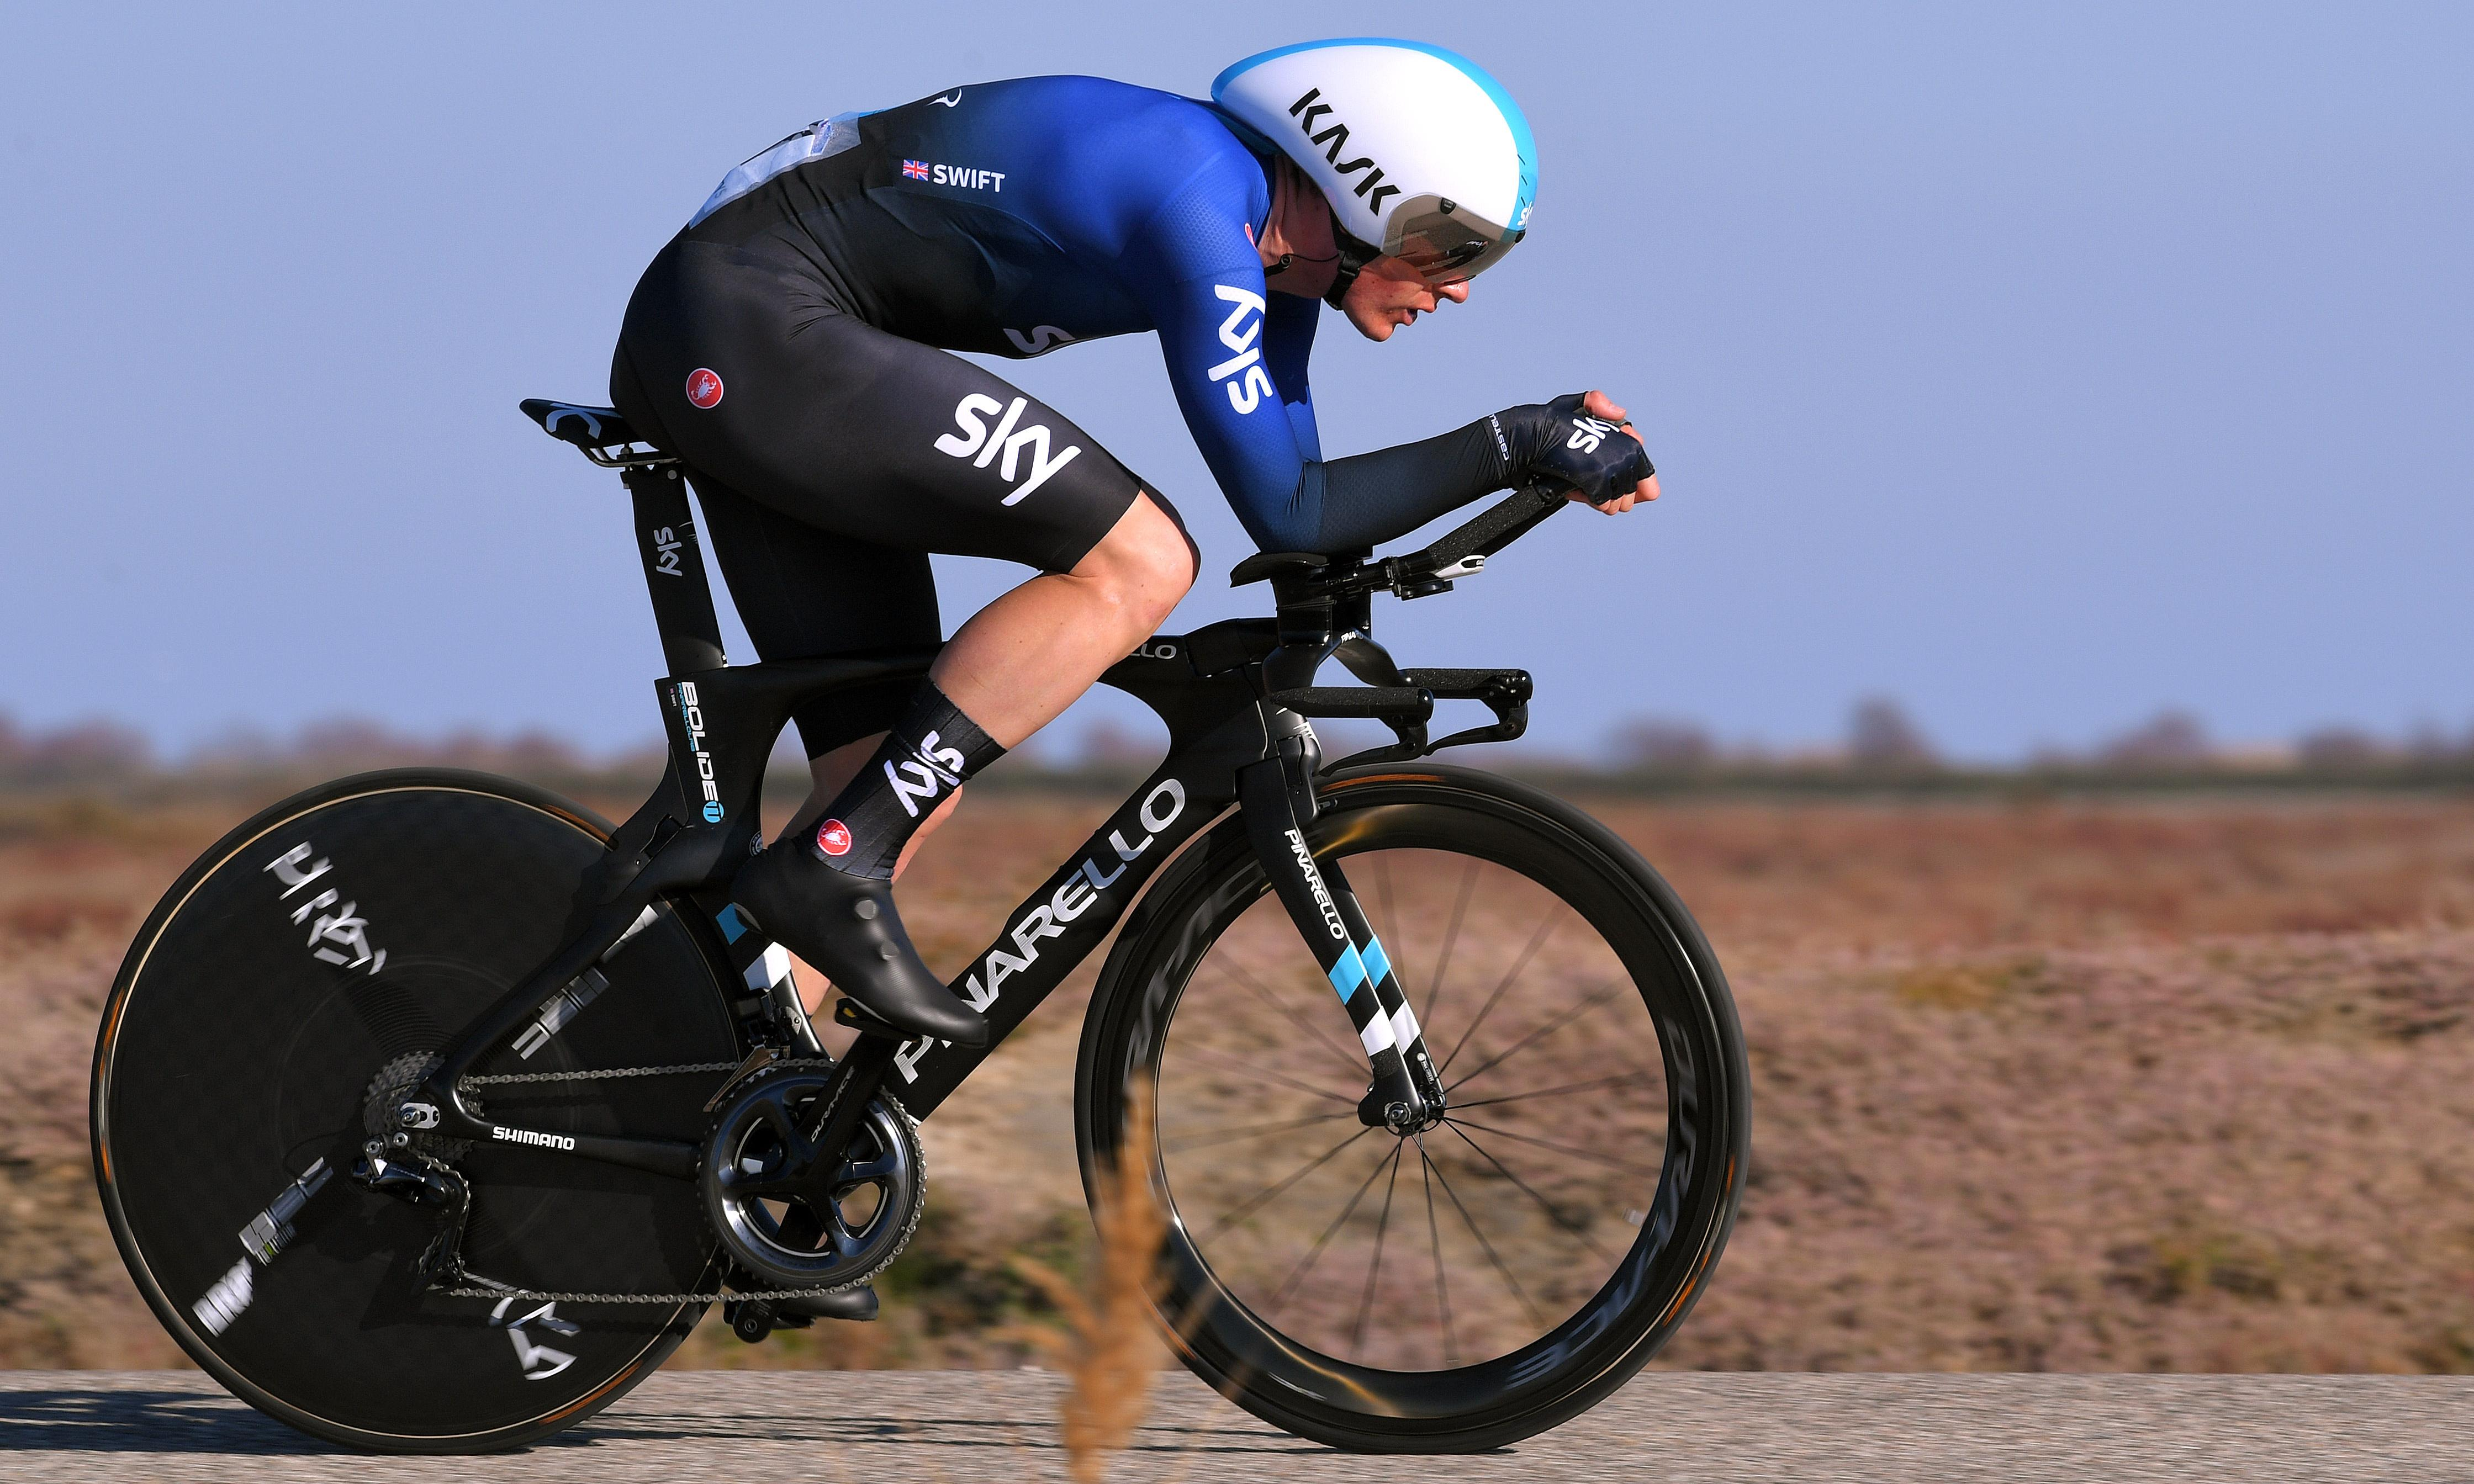 Team Sky's Ben Swift recovering in intensive care after training crash